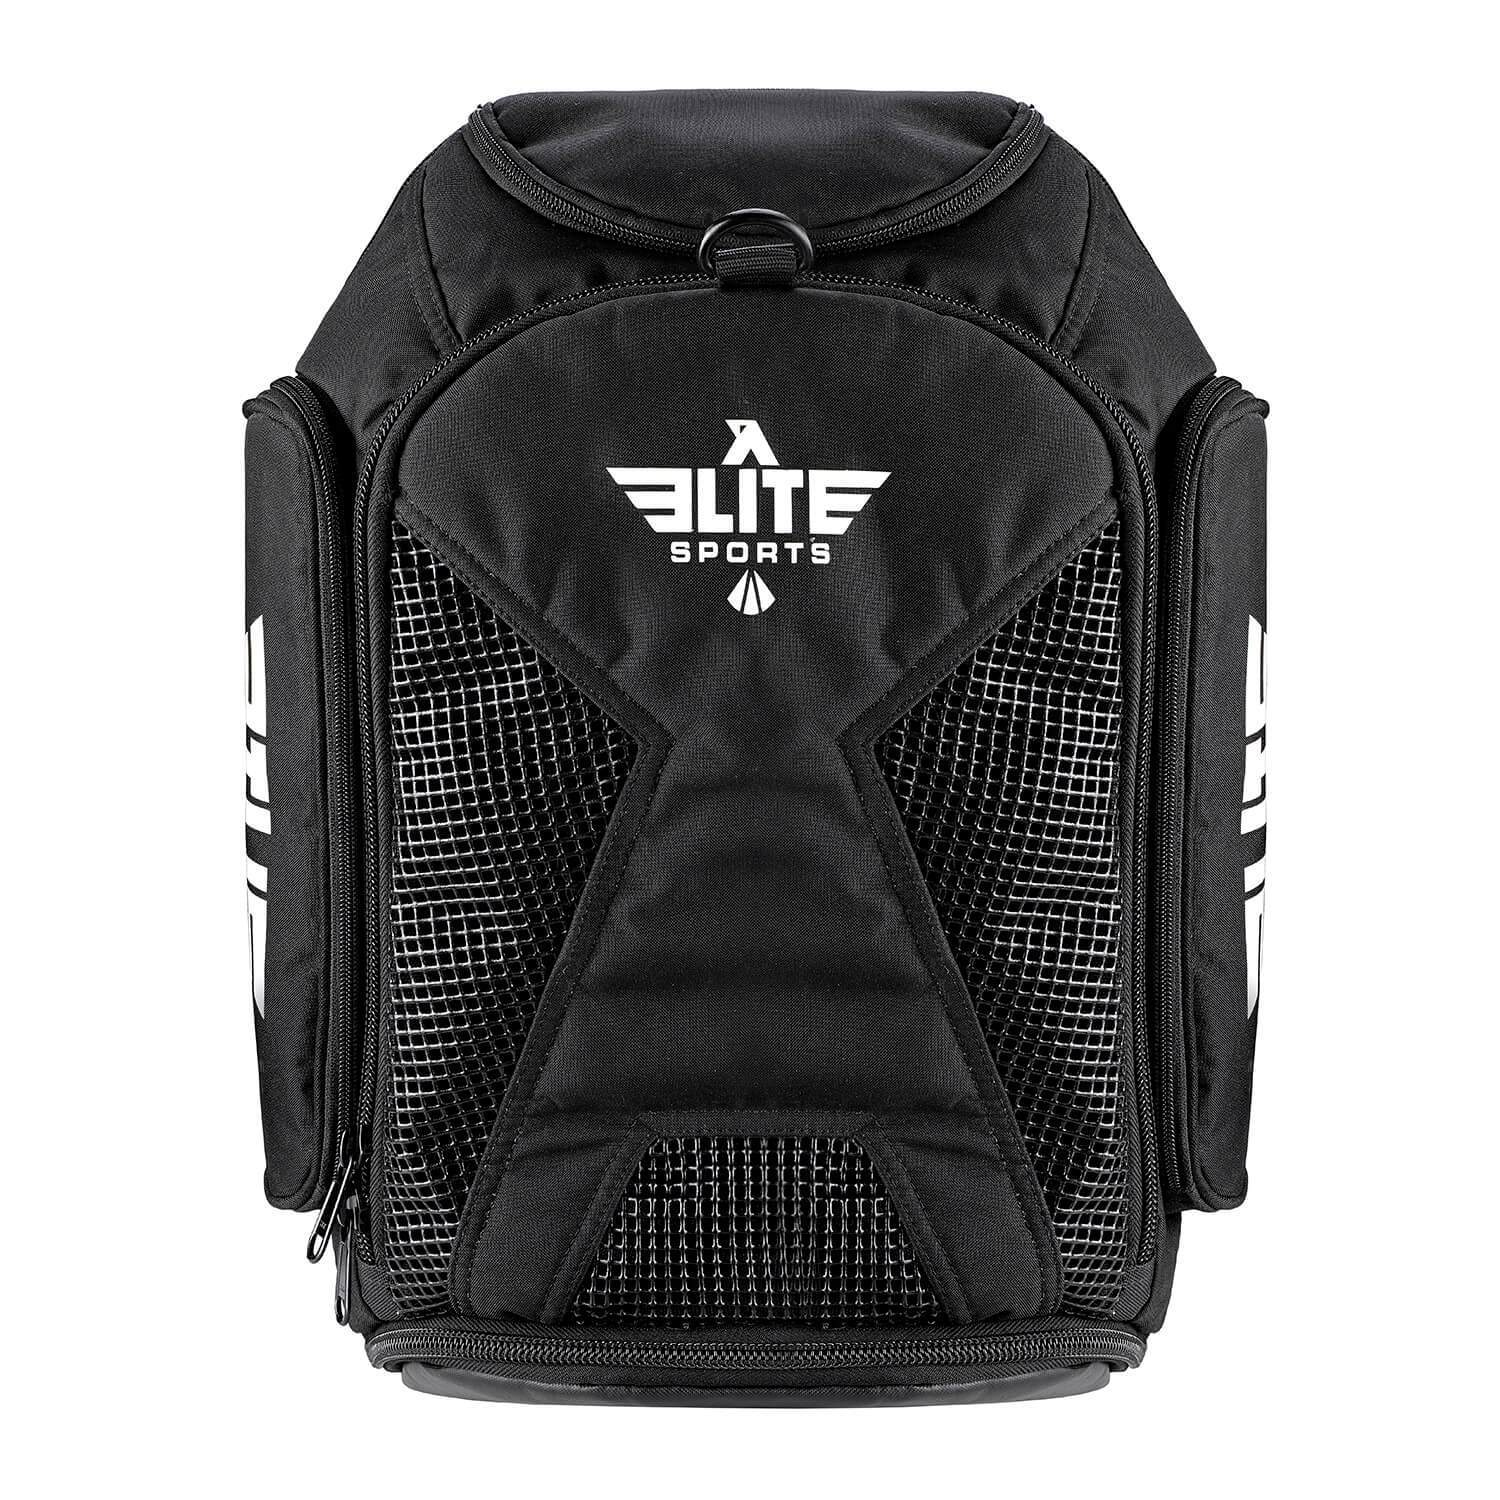 Elite Sports Athletic Convertible Black BJJ Gear Gym Bag & Backpack